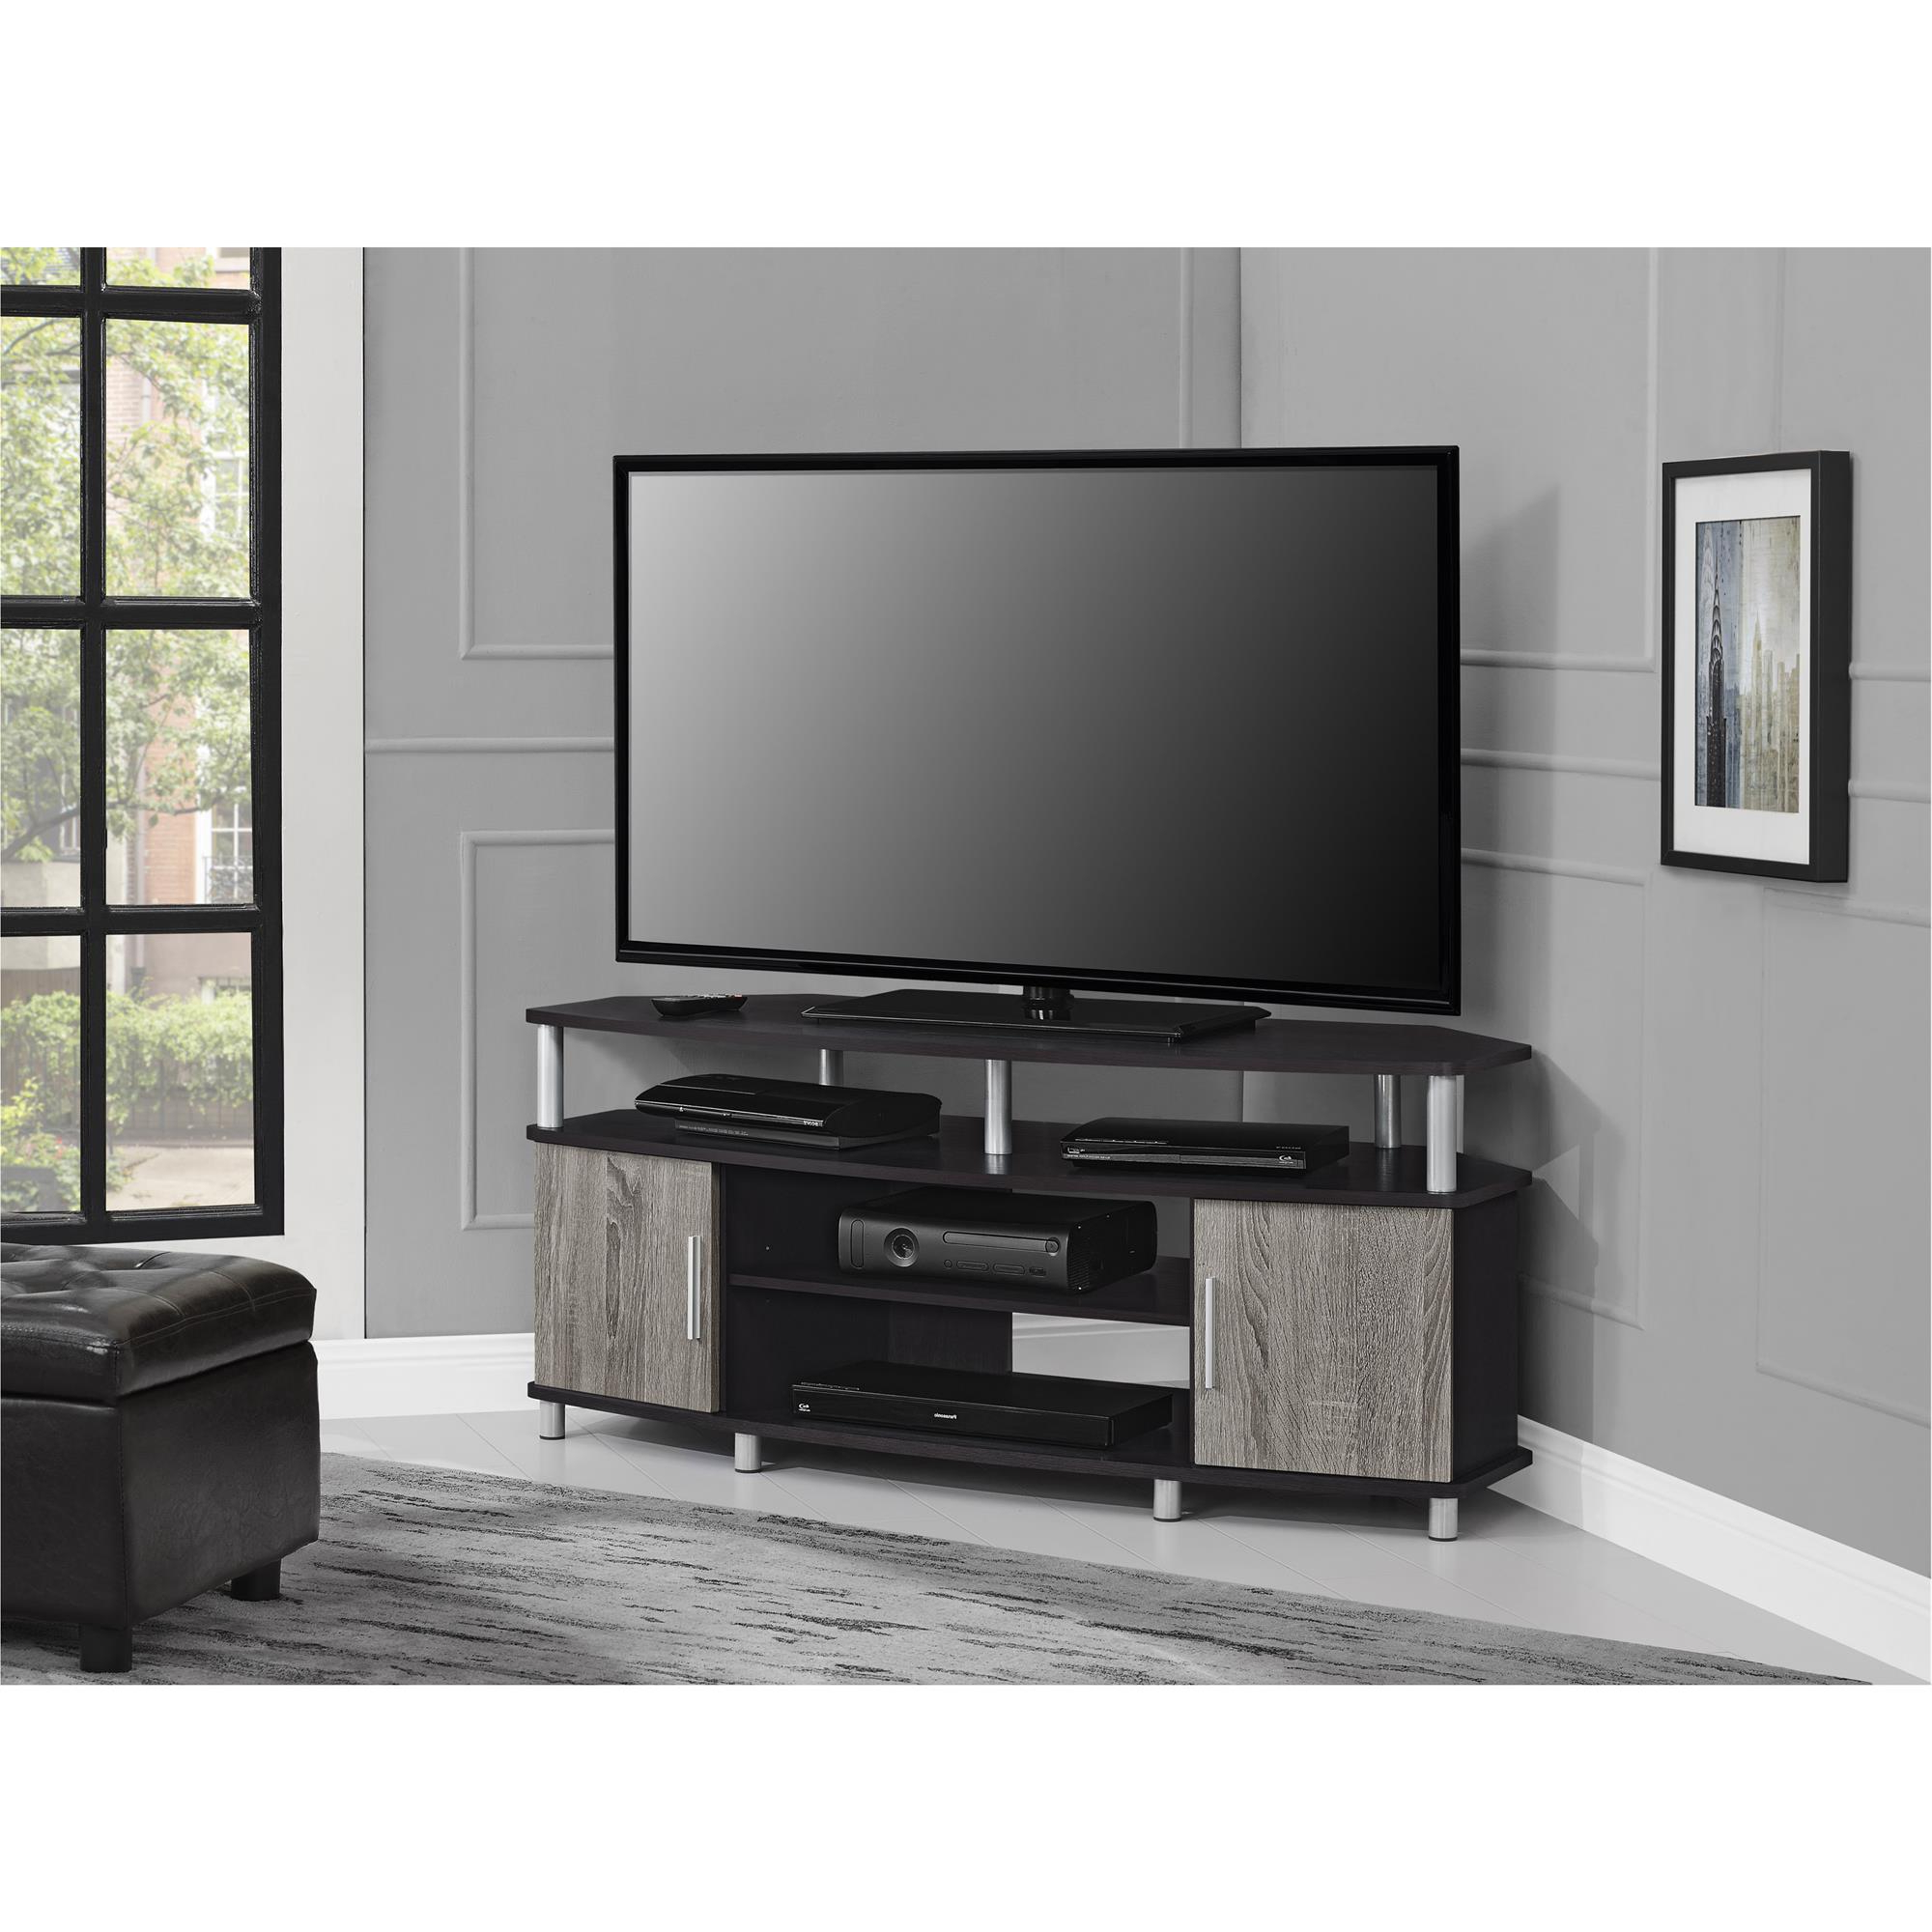 "50 Inch Corner Tv Cabinets For Best And Newest Ameriwood Home Carson Corner Tv Stand For Tvs Up To 50"" Wide, Black (Gallery 1 of 20)"